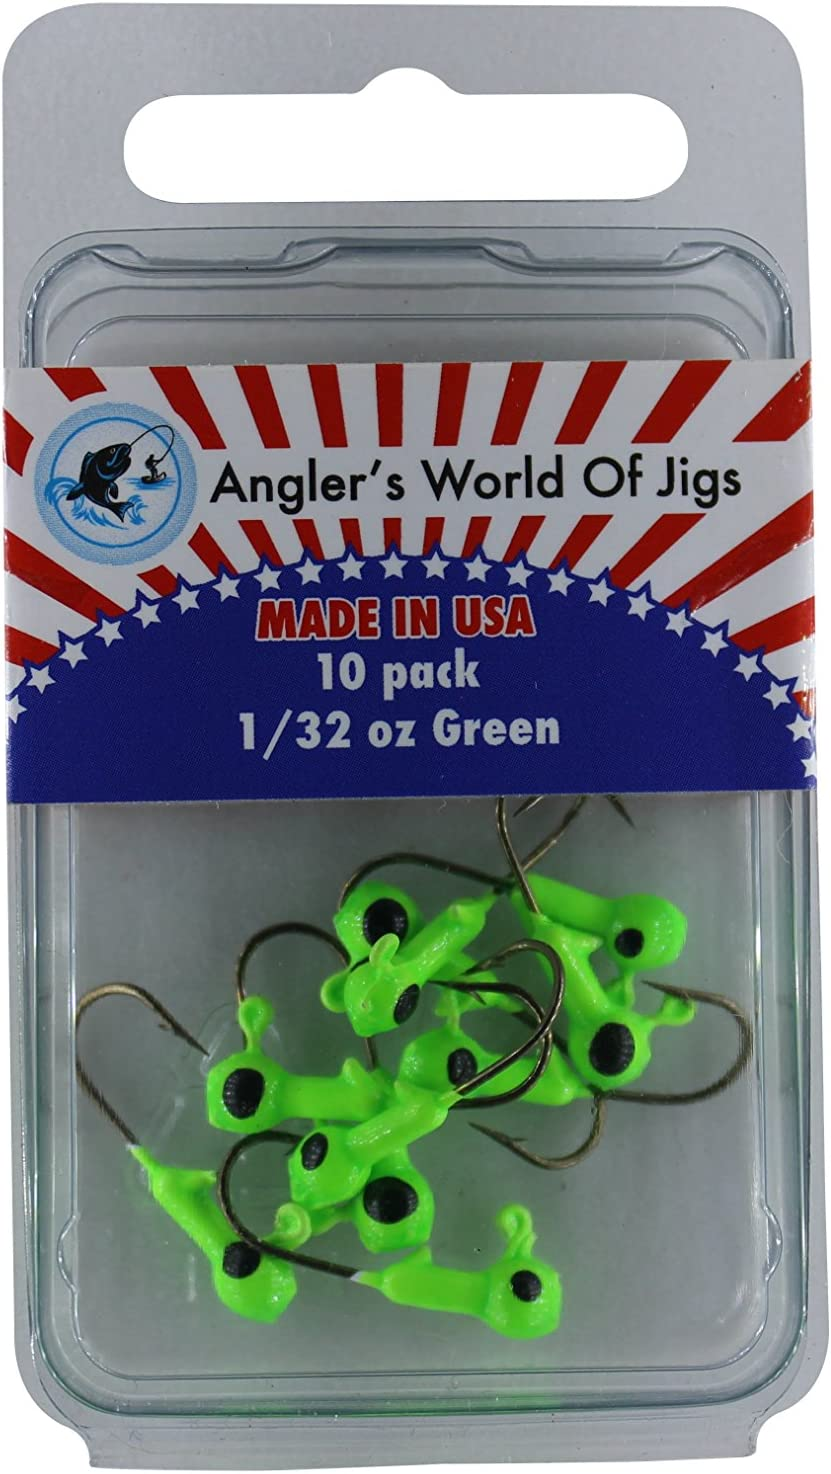 FREE USA SHIPPING .. 25 ROUND FRESHWATER CRAPPIE JIG HEADS